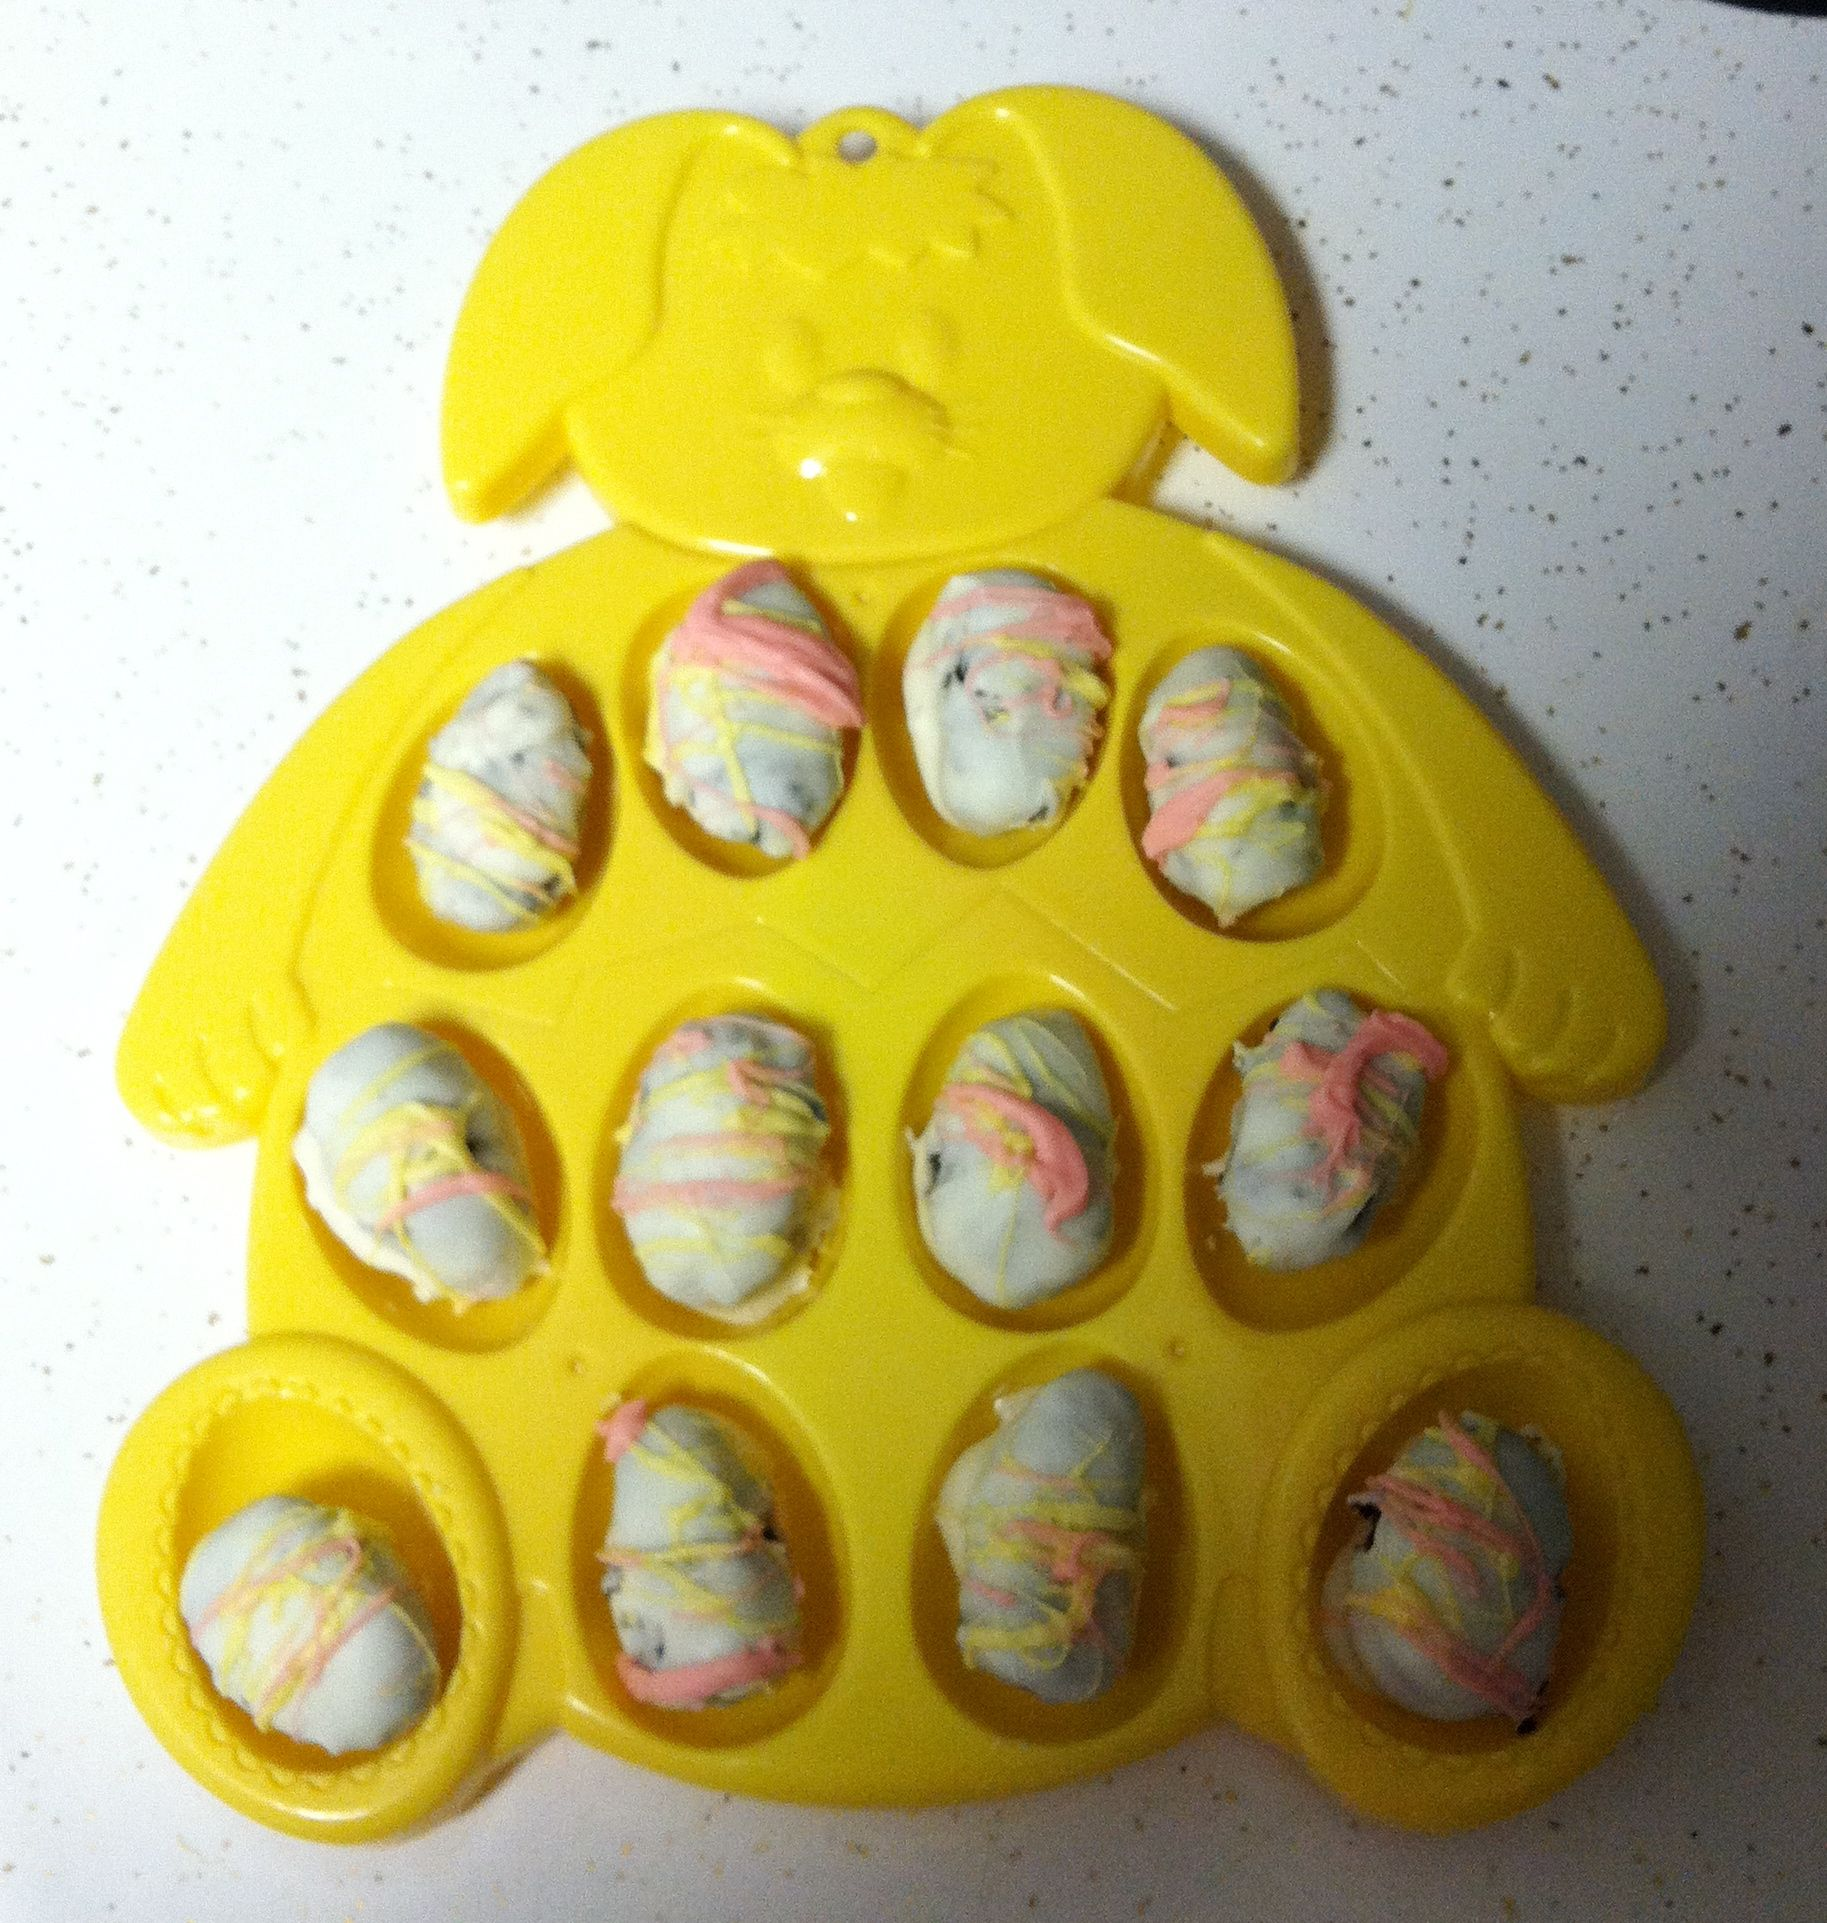 Oreo balls made into Oreo eggs for Easter! Click picture for recipe.